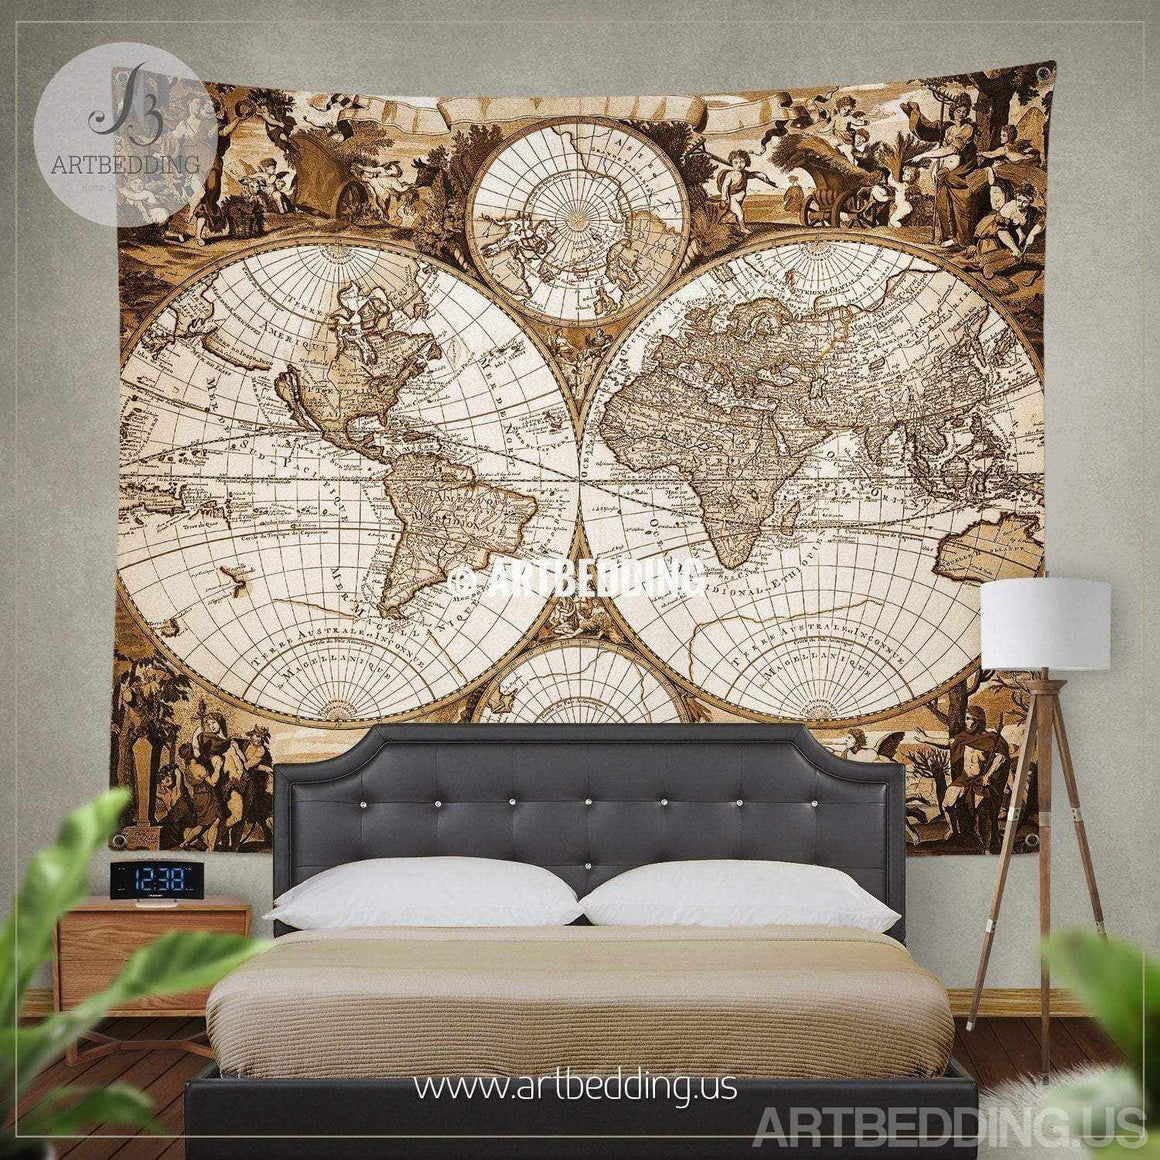 Antique world map wall tapestry, Ancient world map wall hanging, vintage old map wall decor, Steampunk wall art print Tapestry